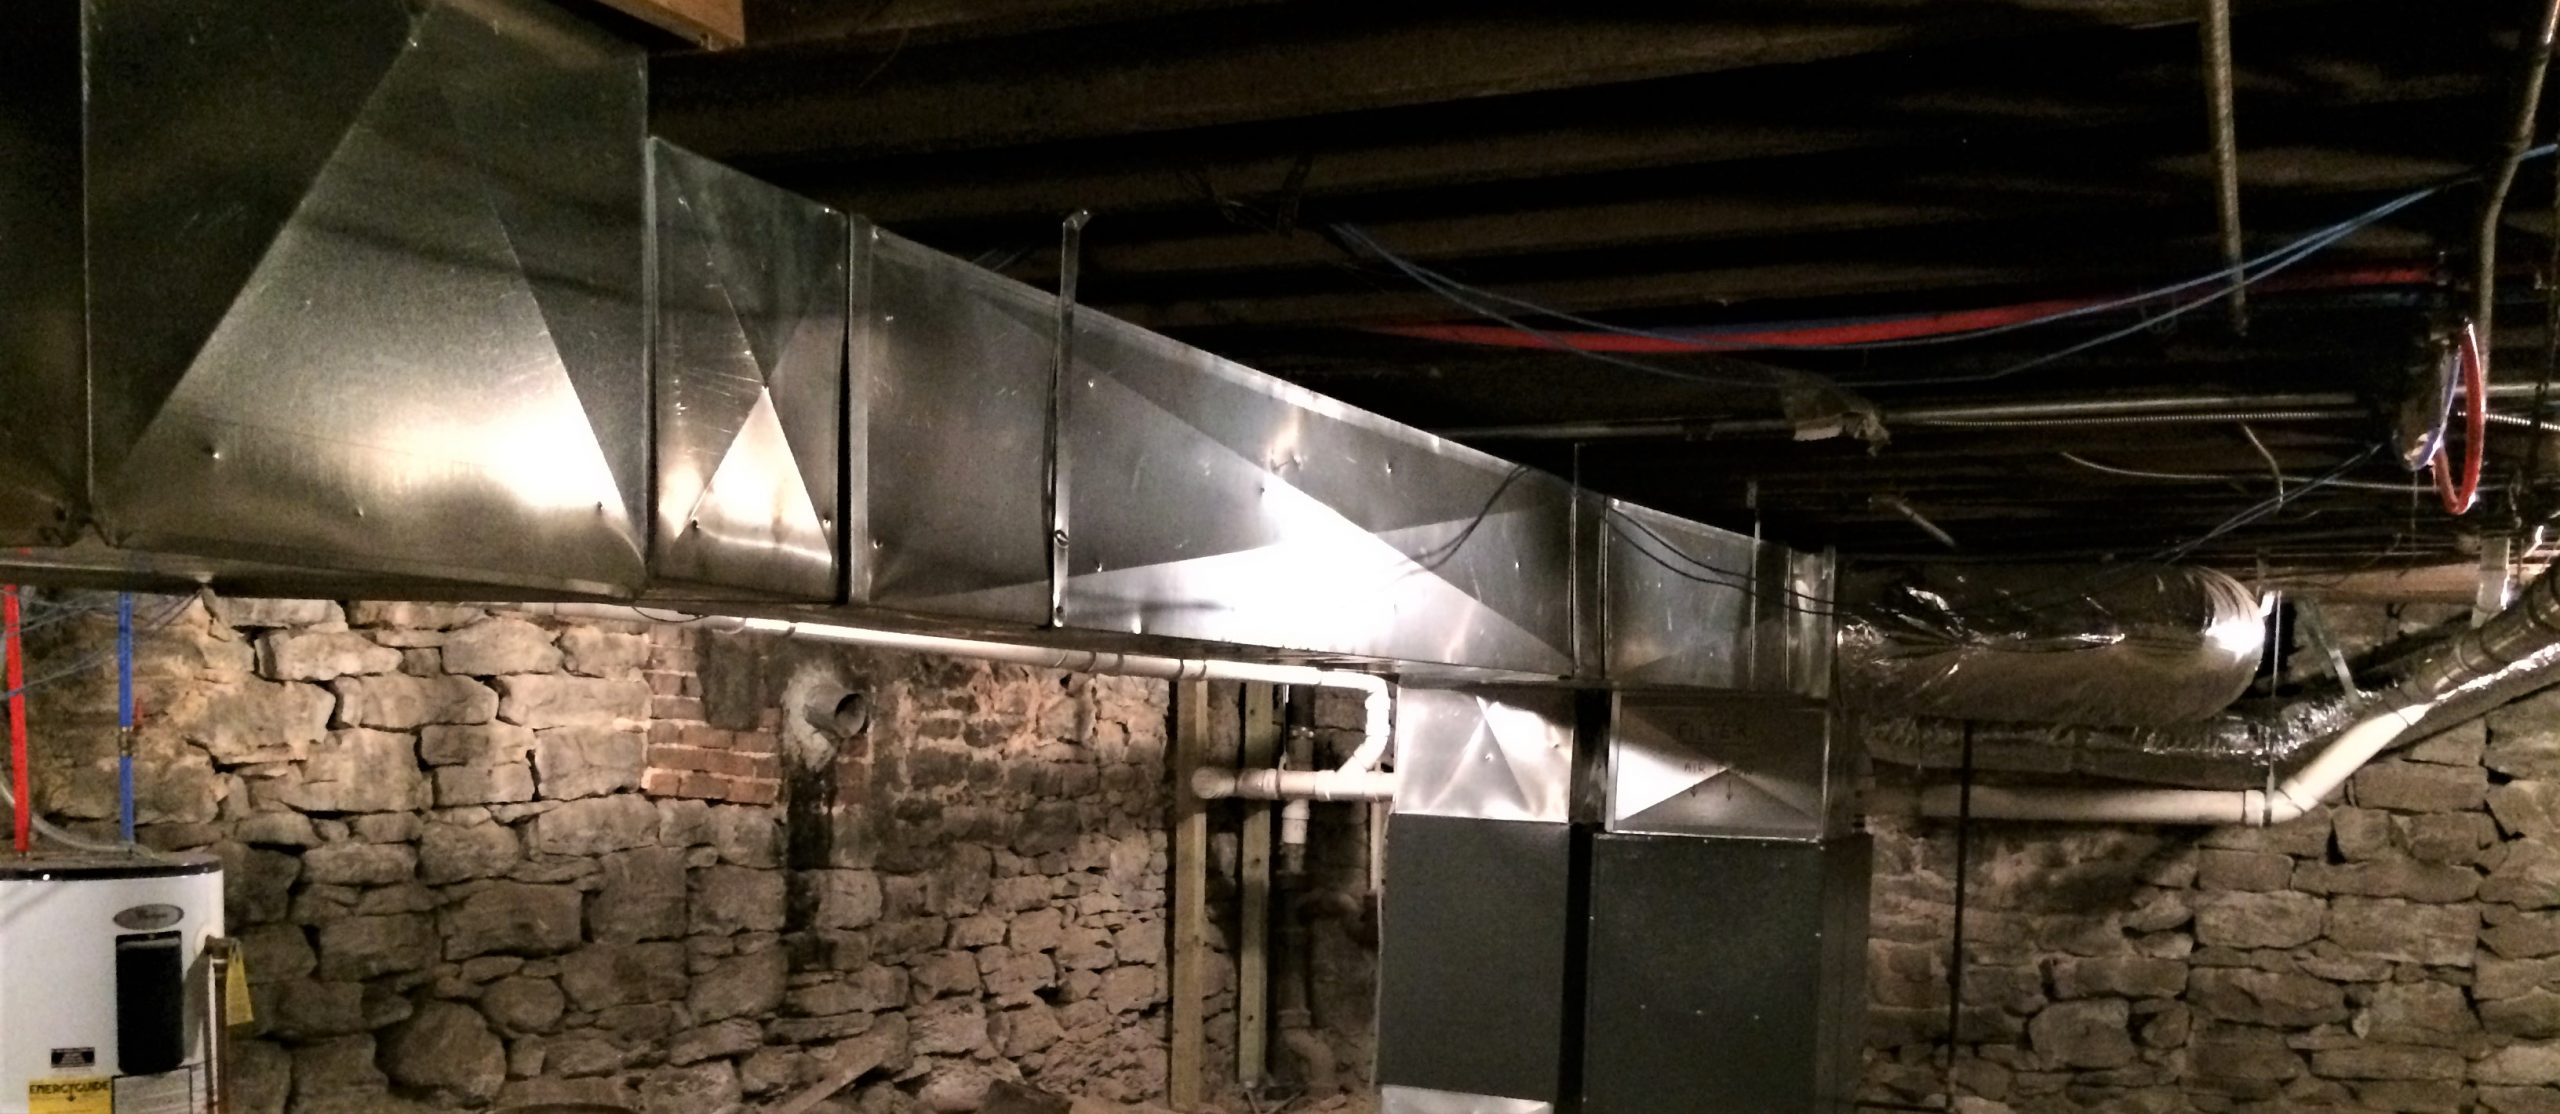 air ducts in Springfield basement, air duct cleaning improves air quality